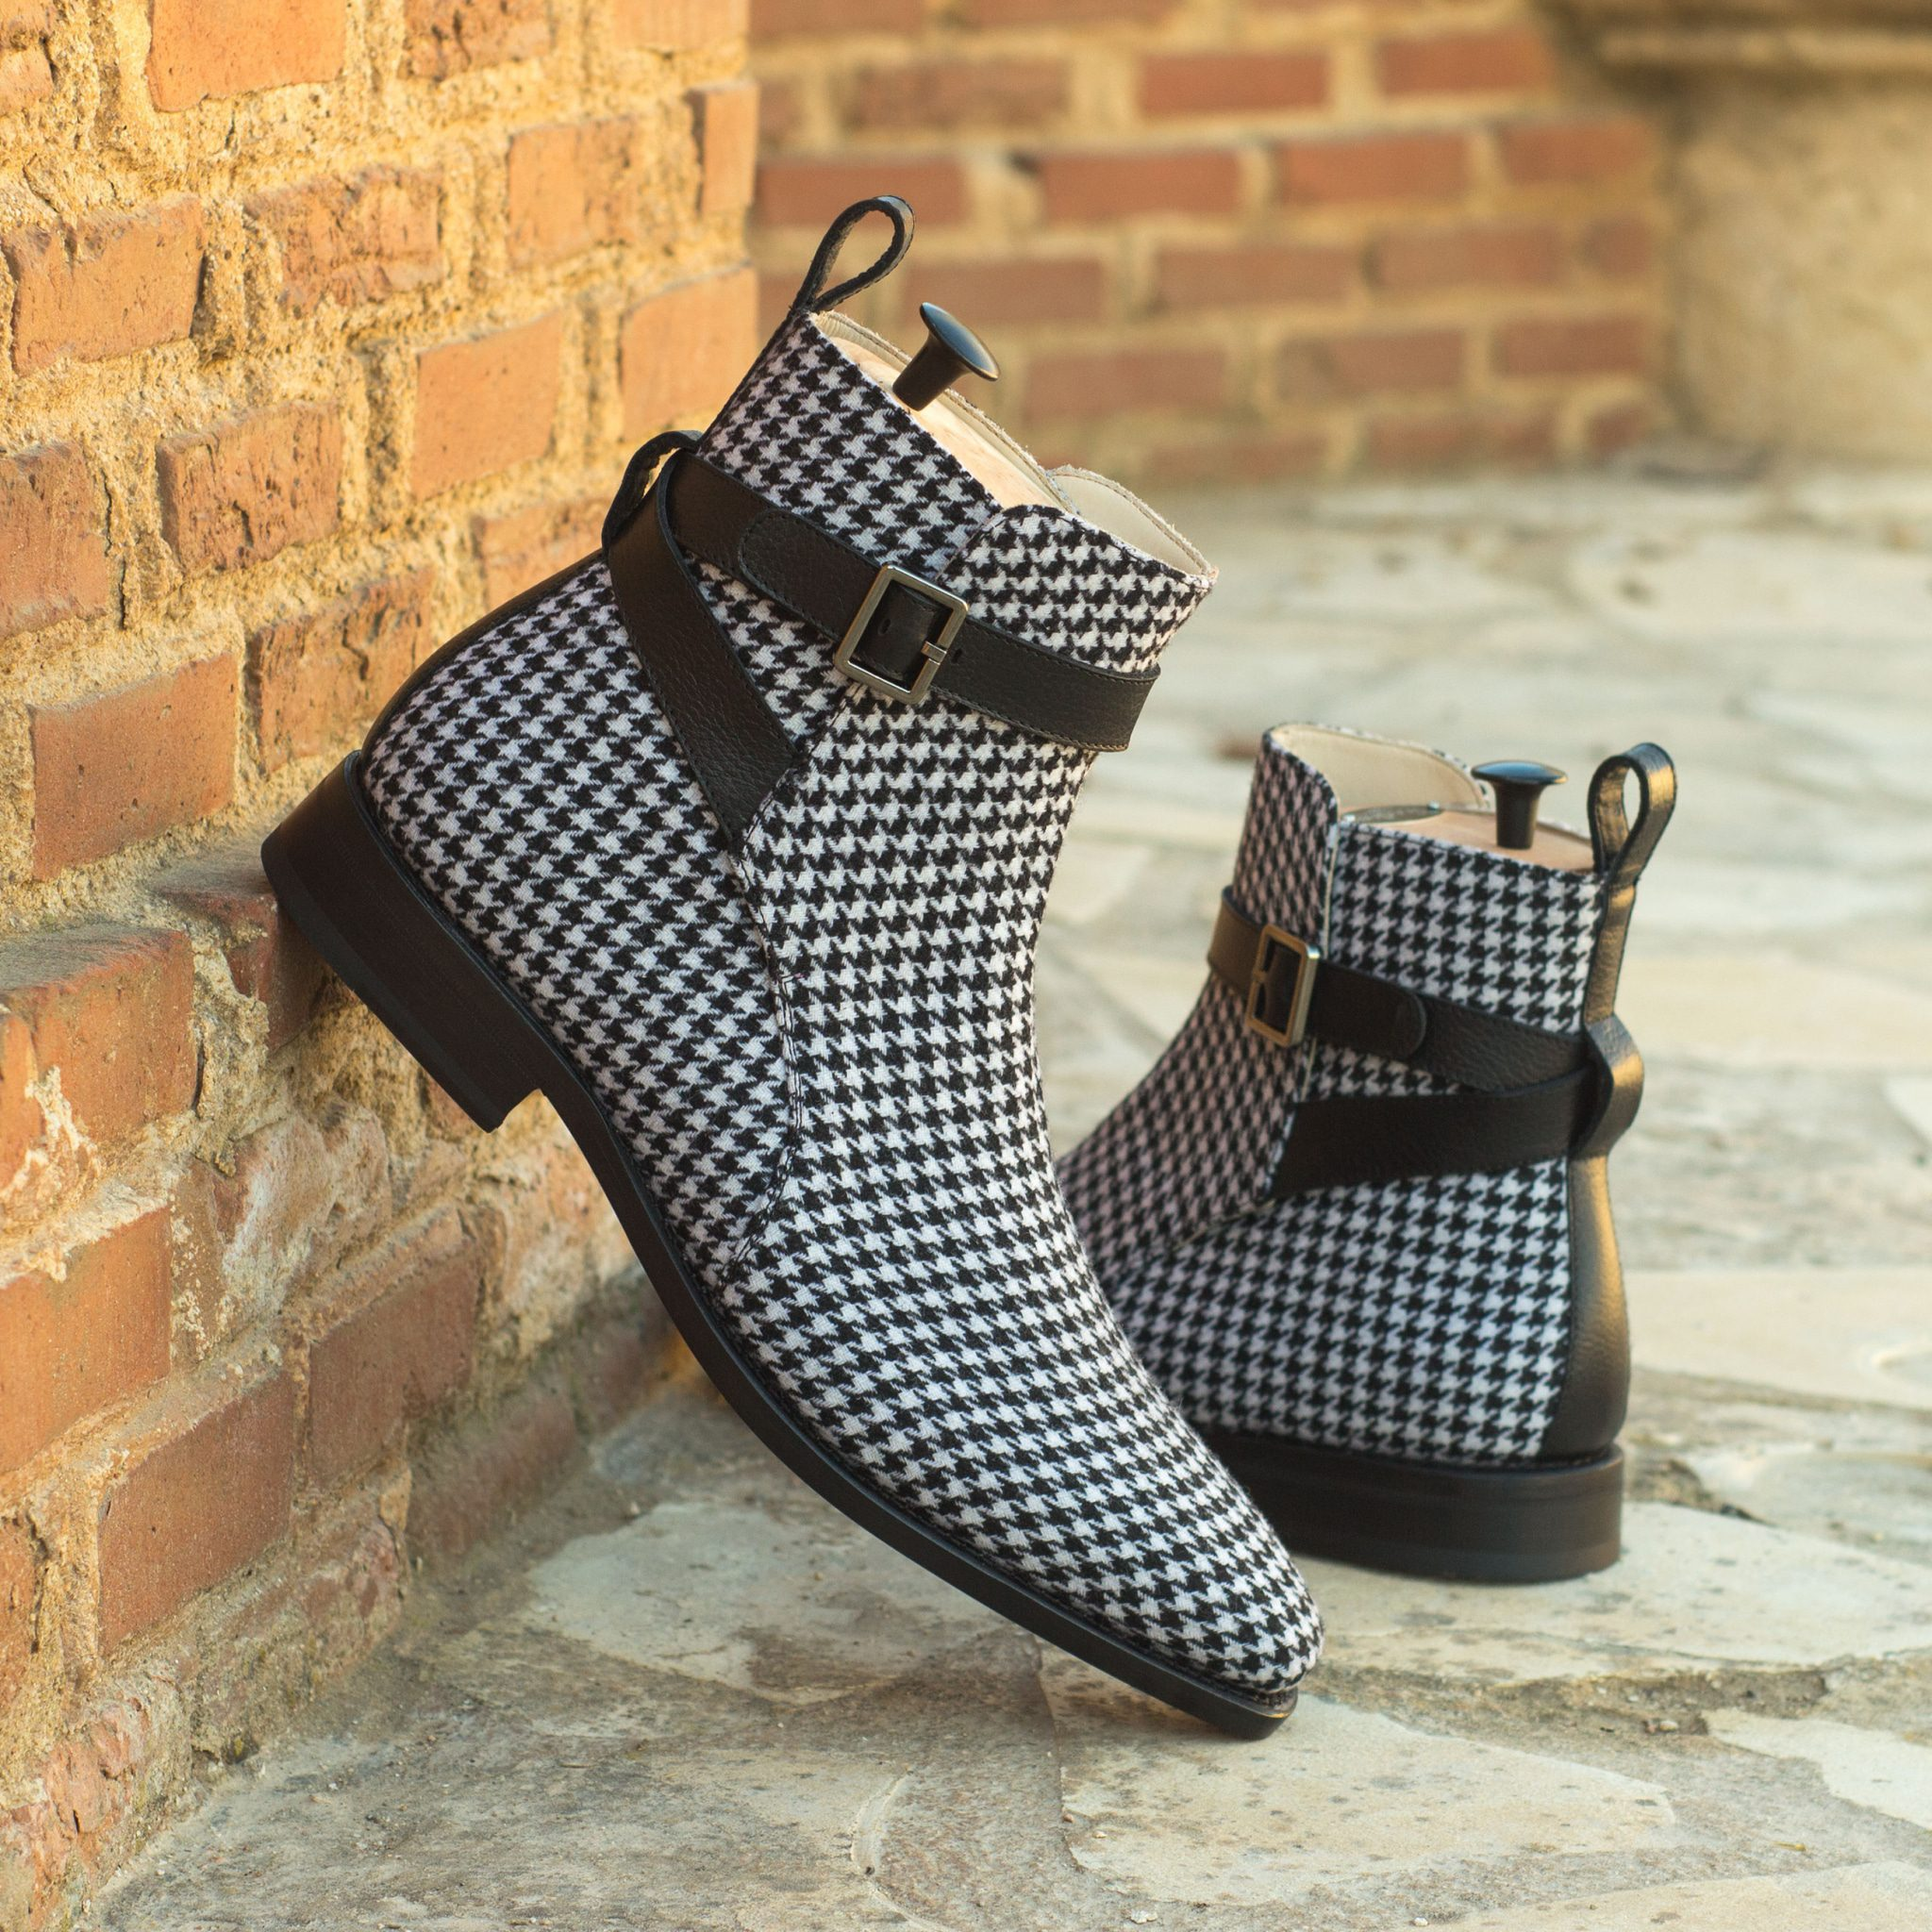 Custom Made Goodyear Welted Jodhpur Boot in Houndstooth with Black Painted Full Grain Leather